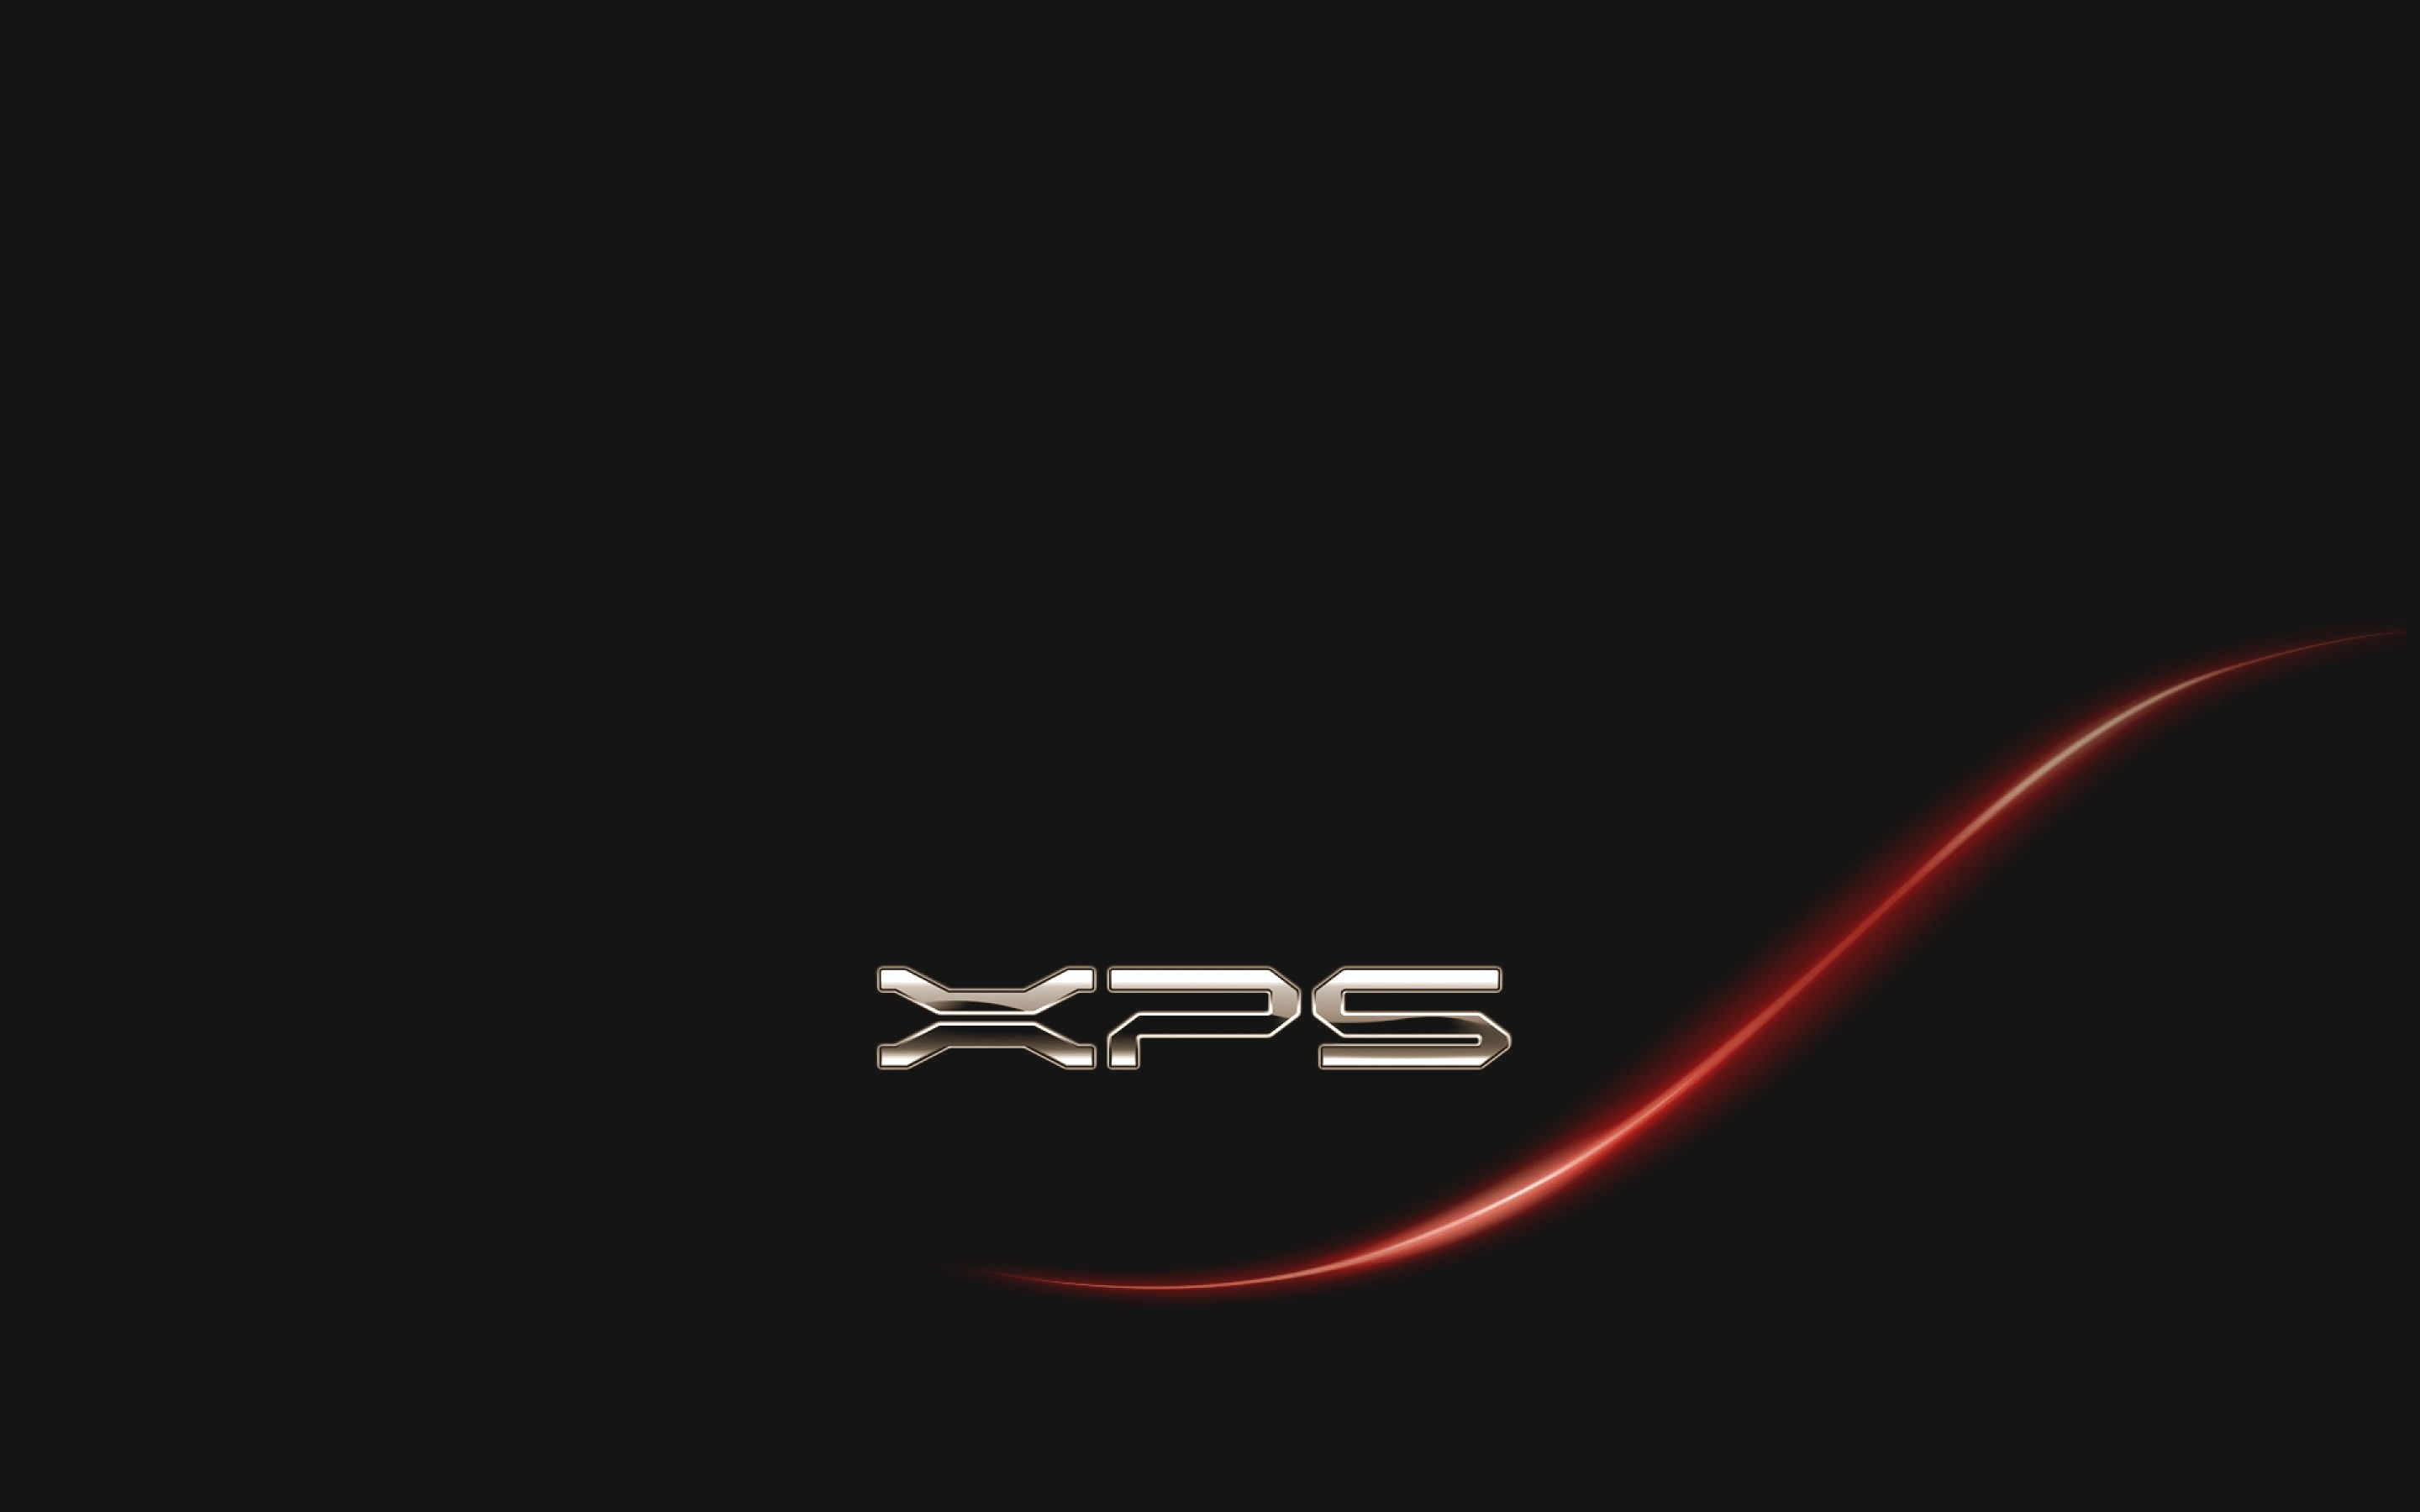 xps wallpapers hd dell - photo #22